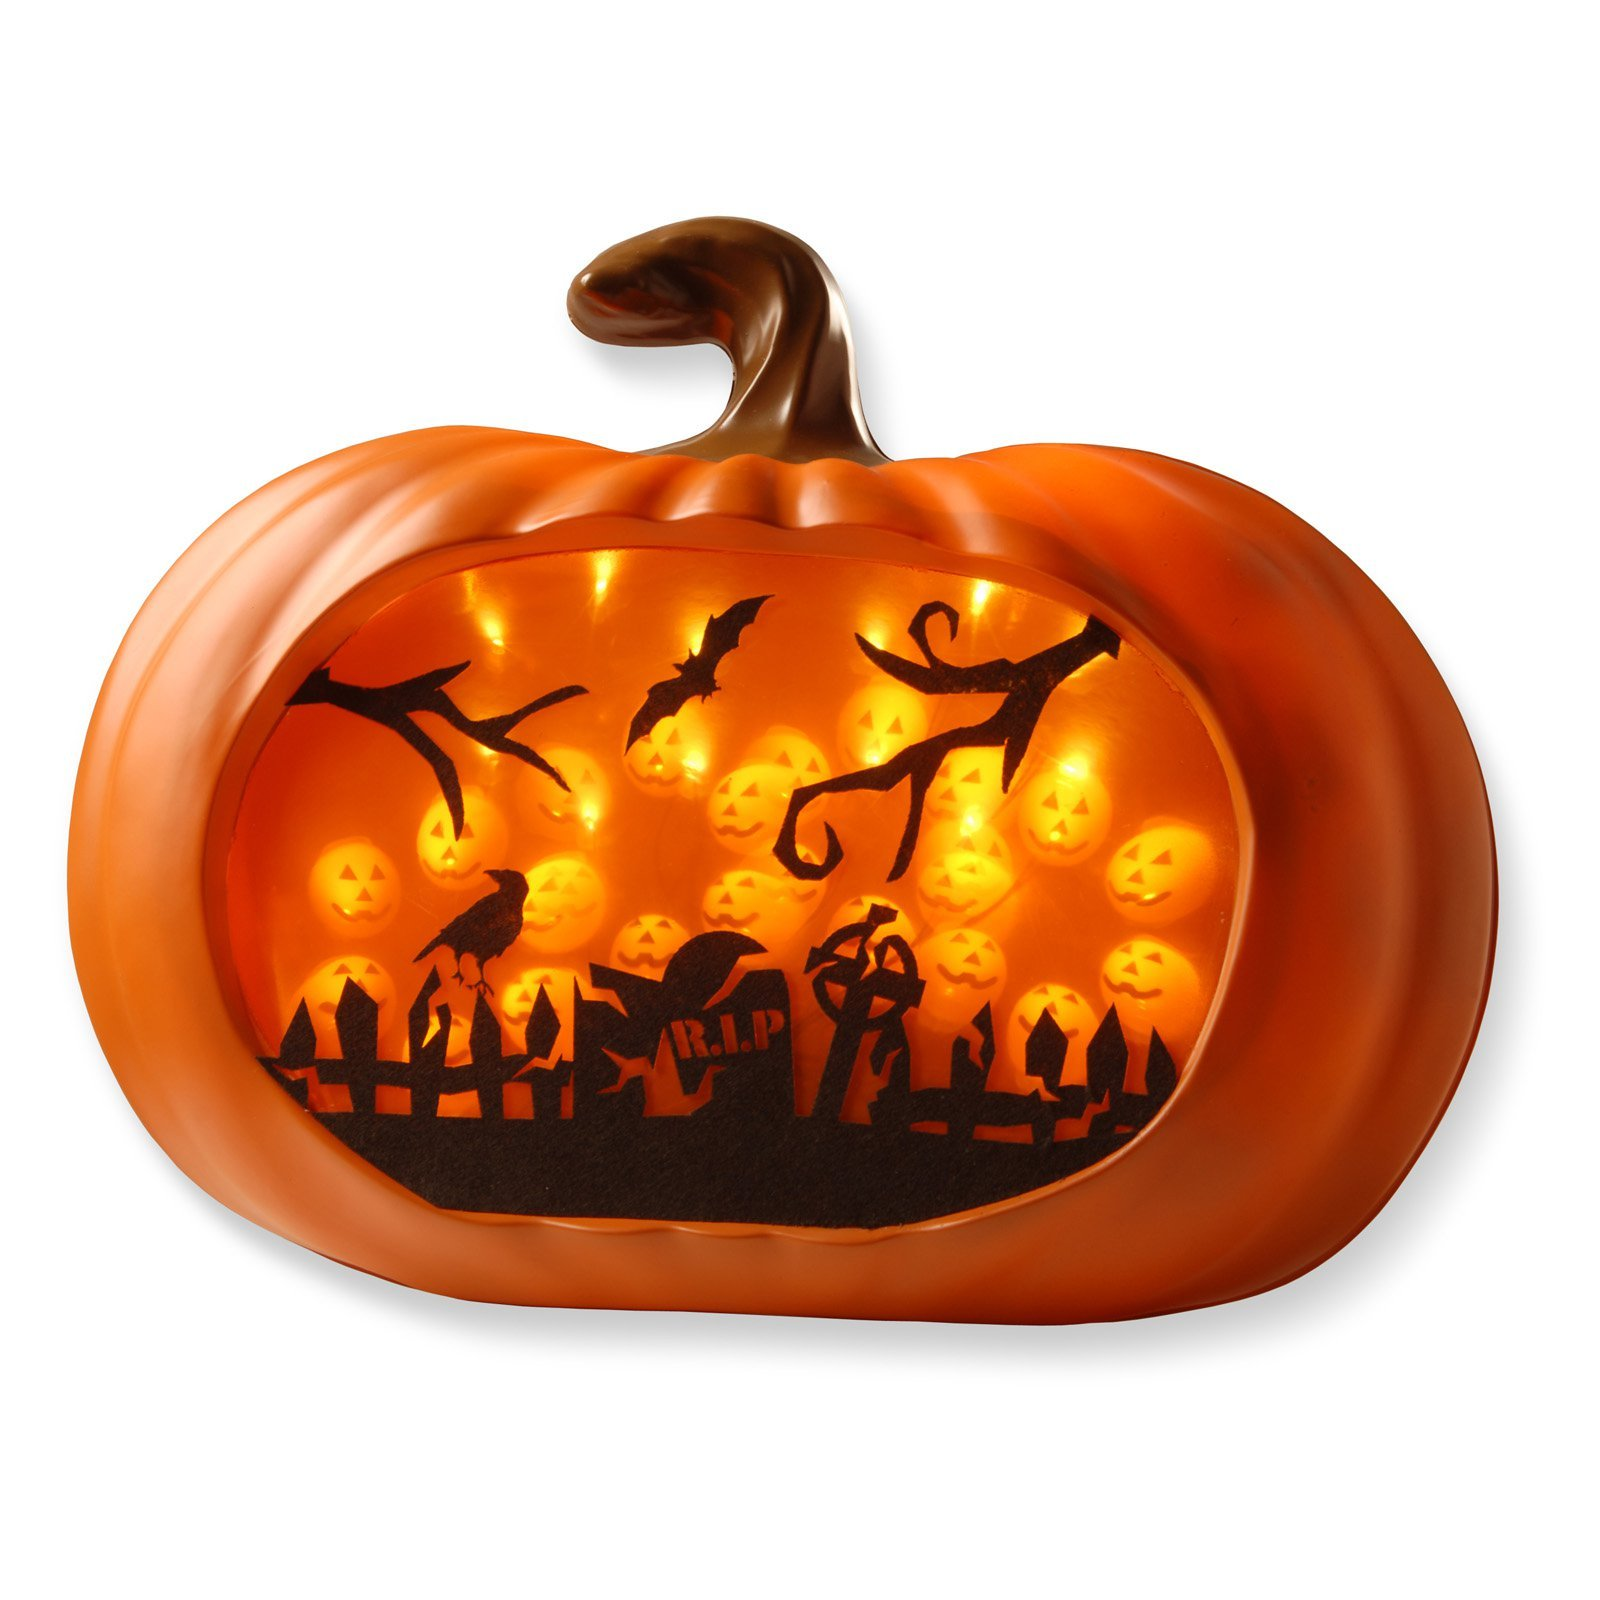 Halloween Pumpkin Party Decoration LED Lighted 3D Wall Decor Autumn Holiday Prop